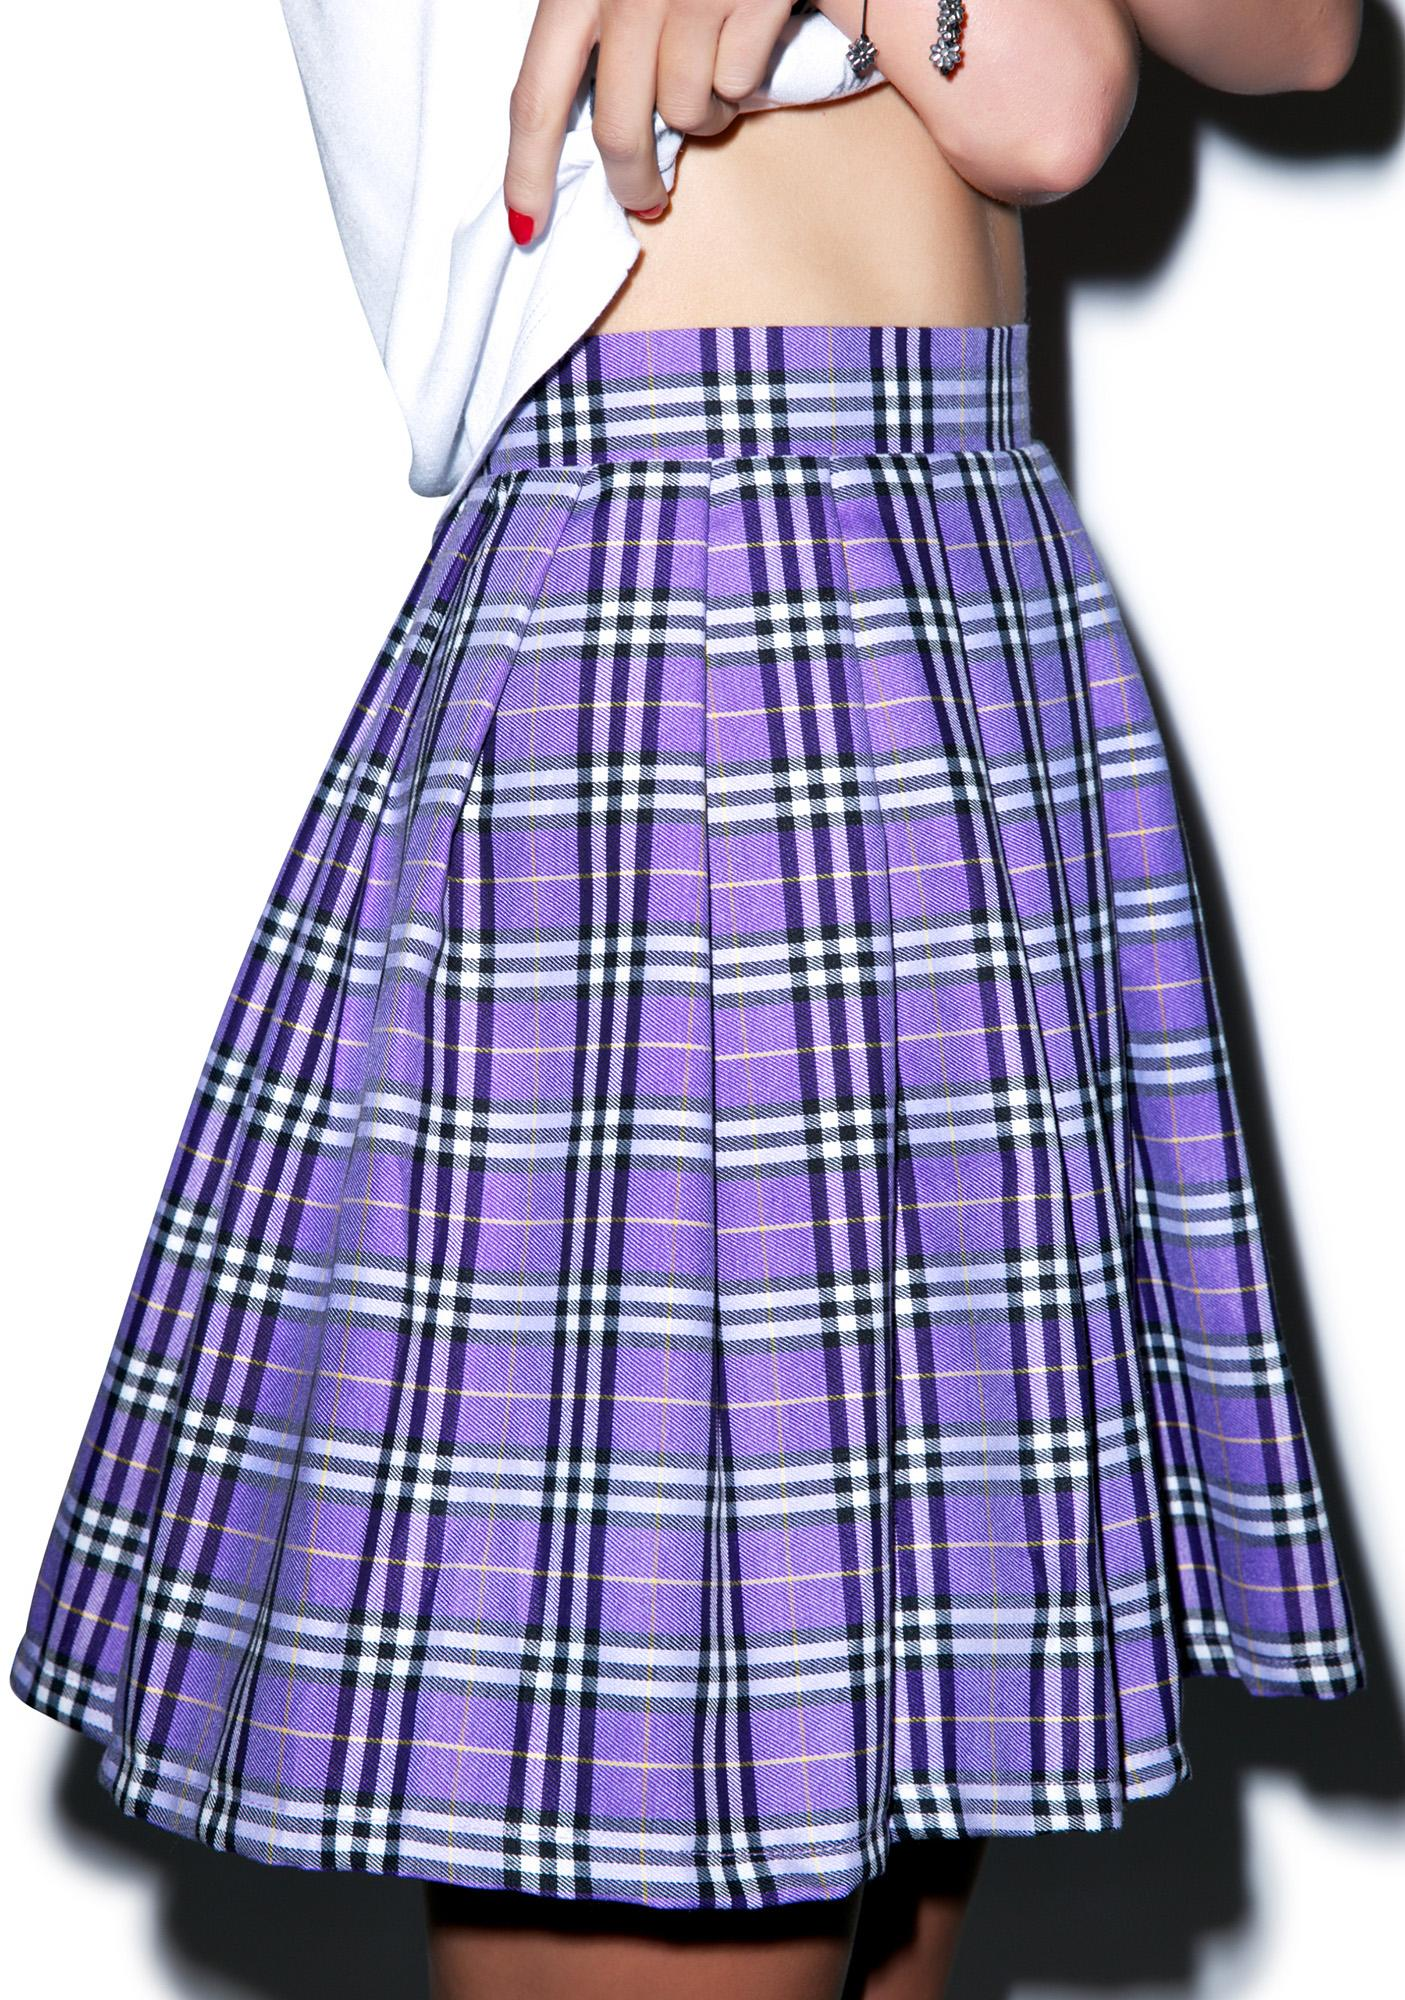 Reality Bites Plaid Skirt